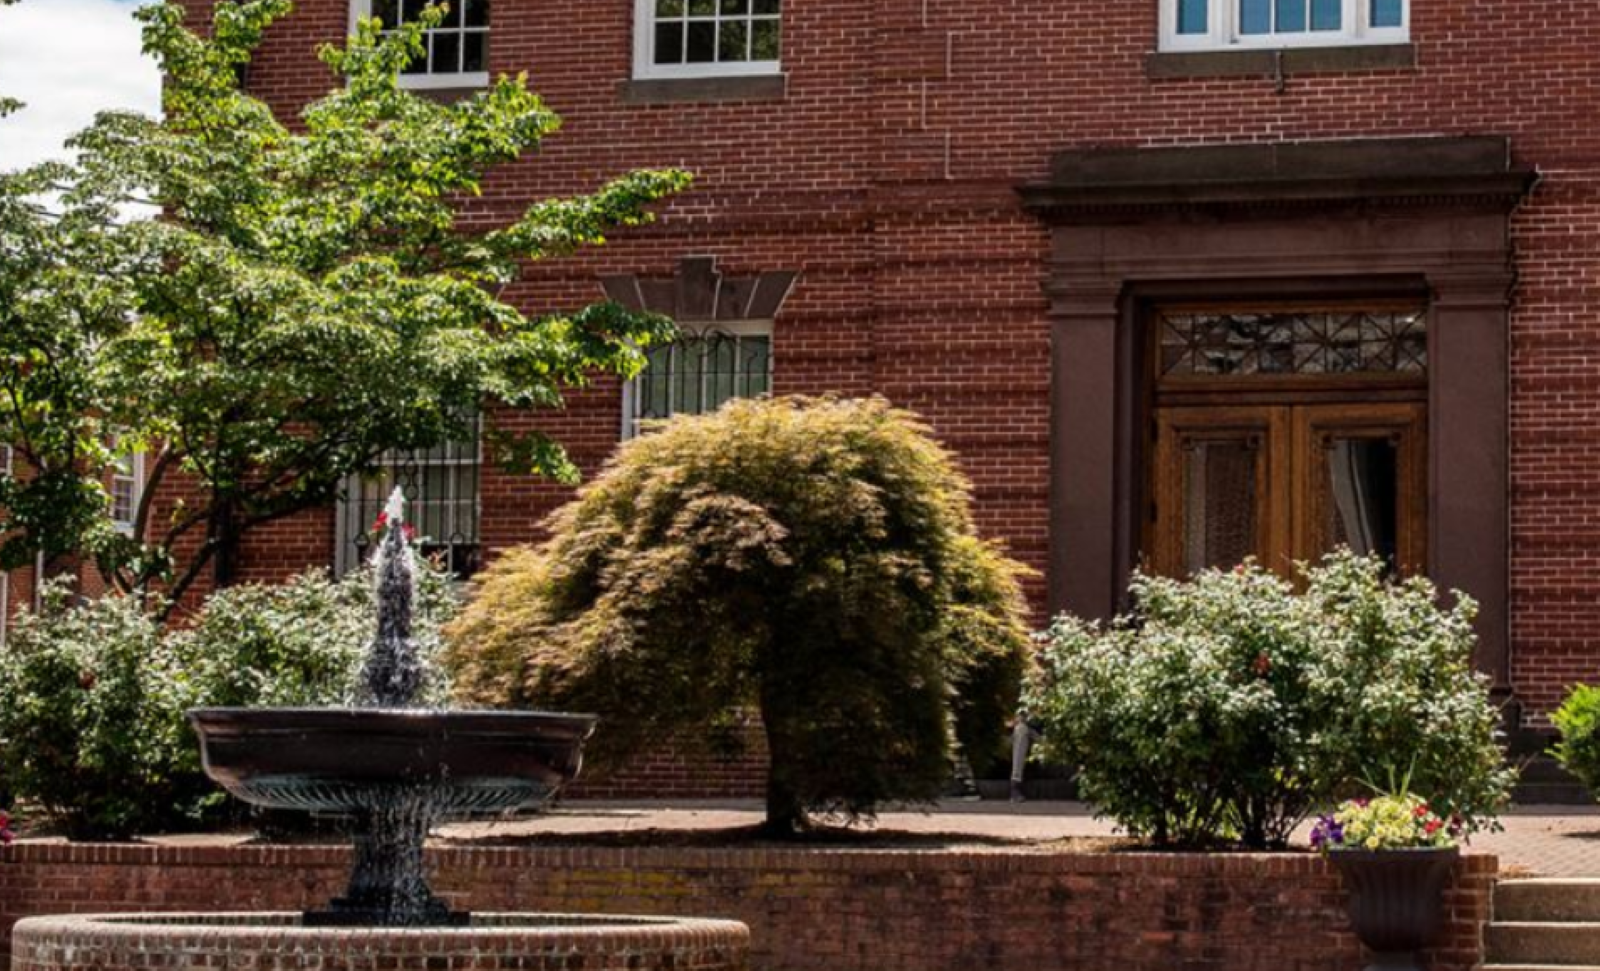 Red brick building and fountain in downtown Bel Air Maryland